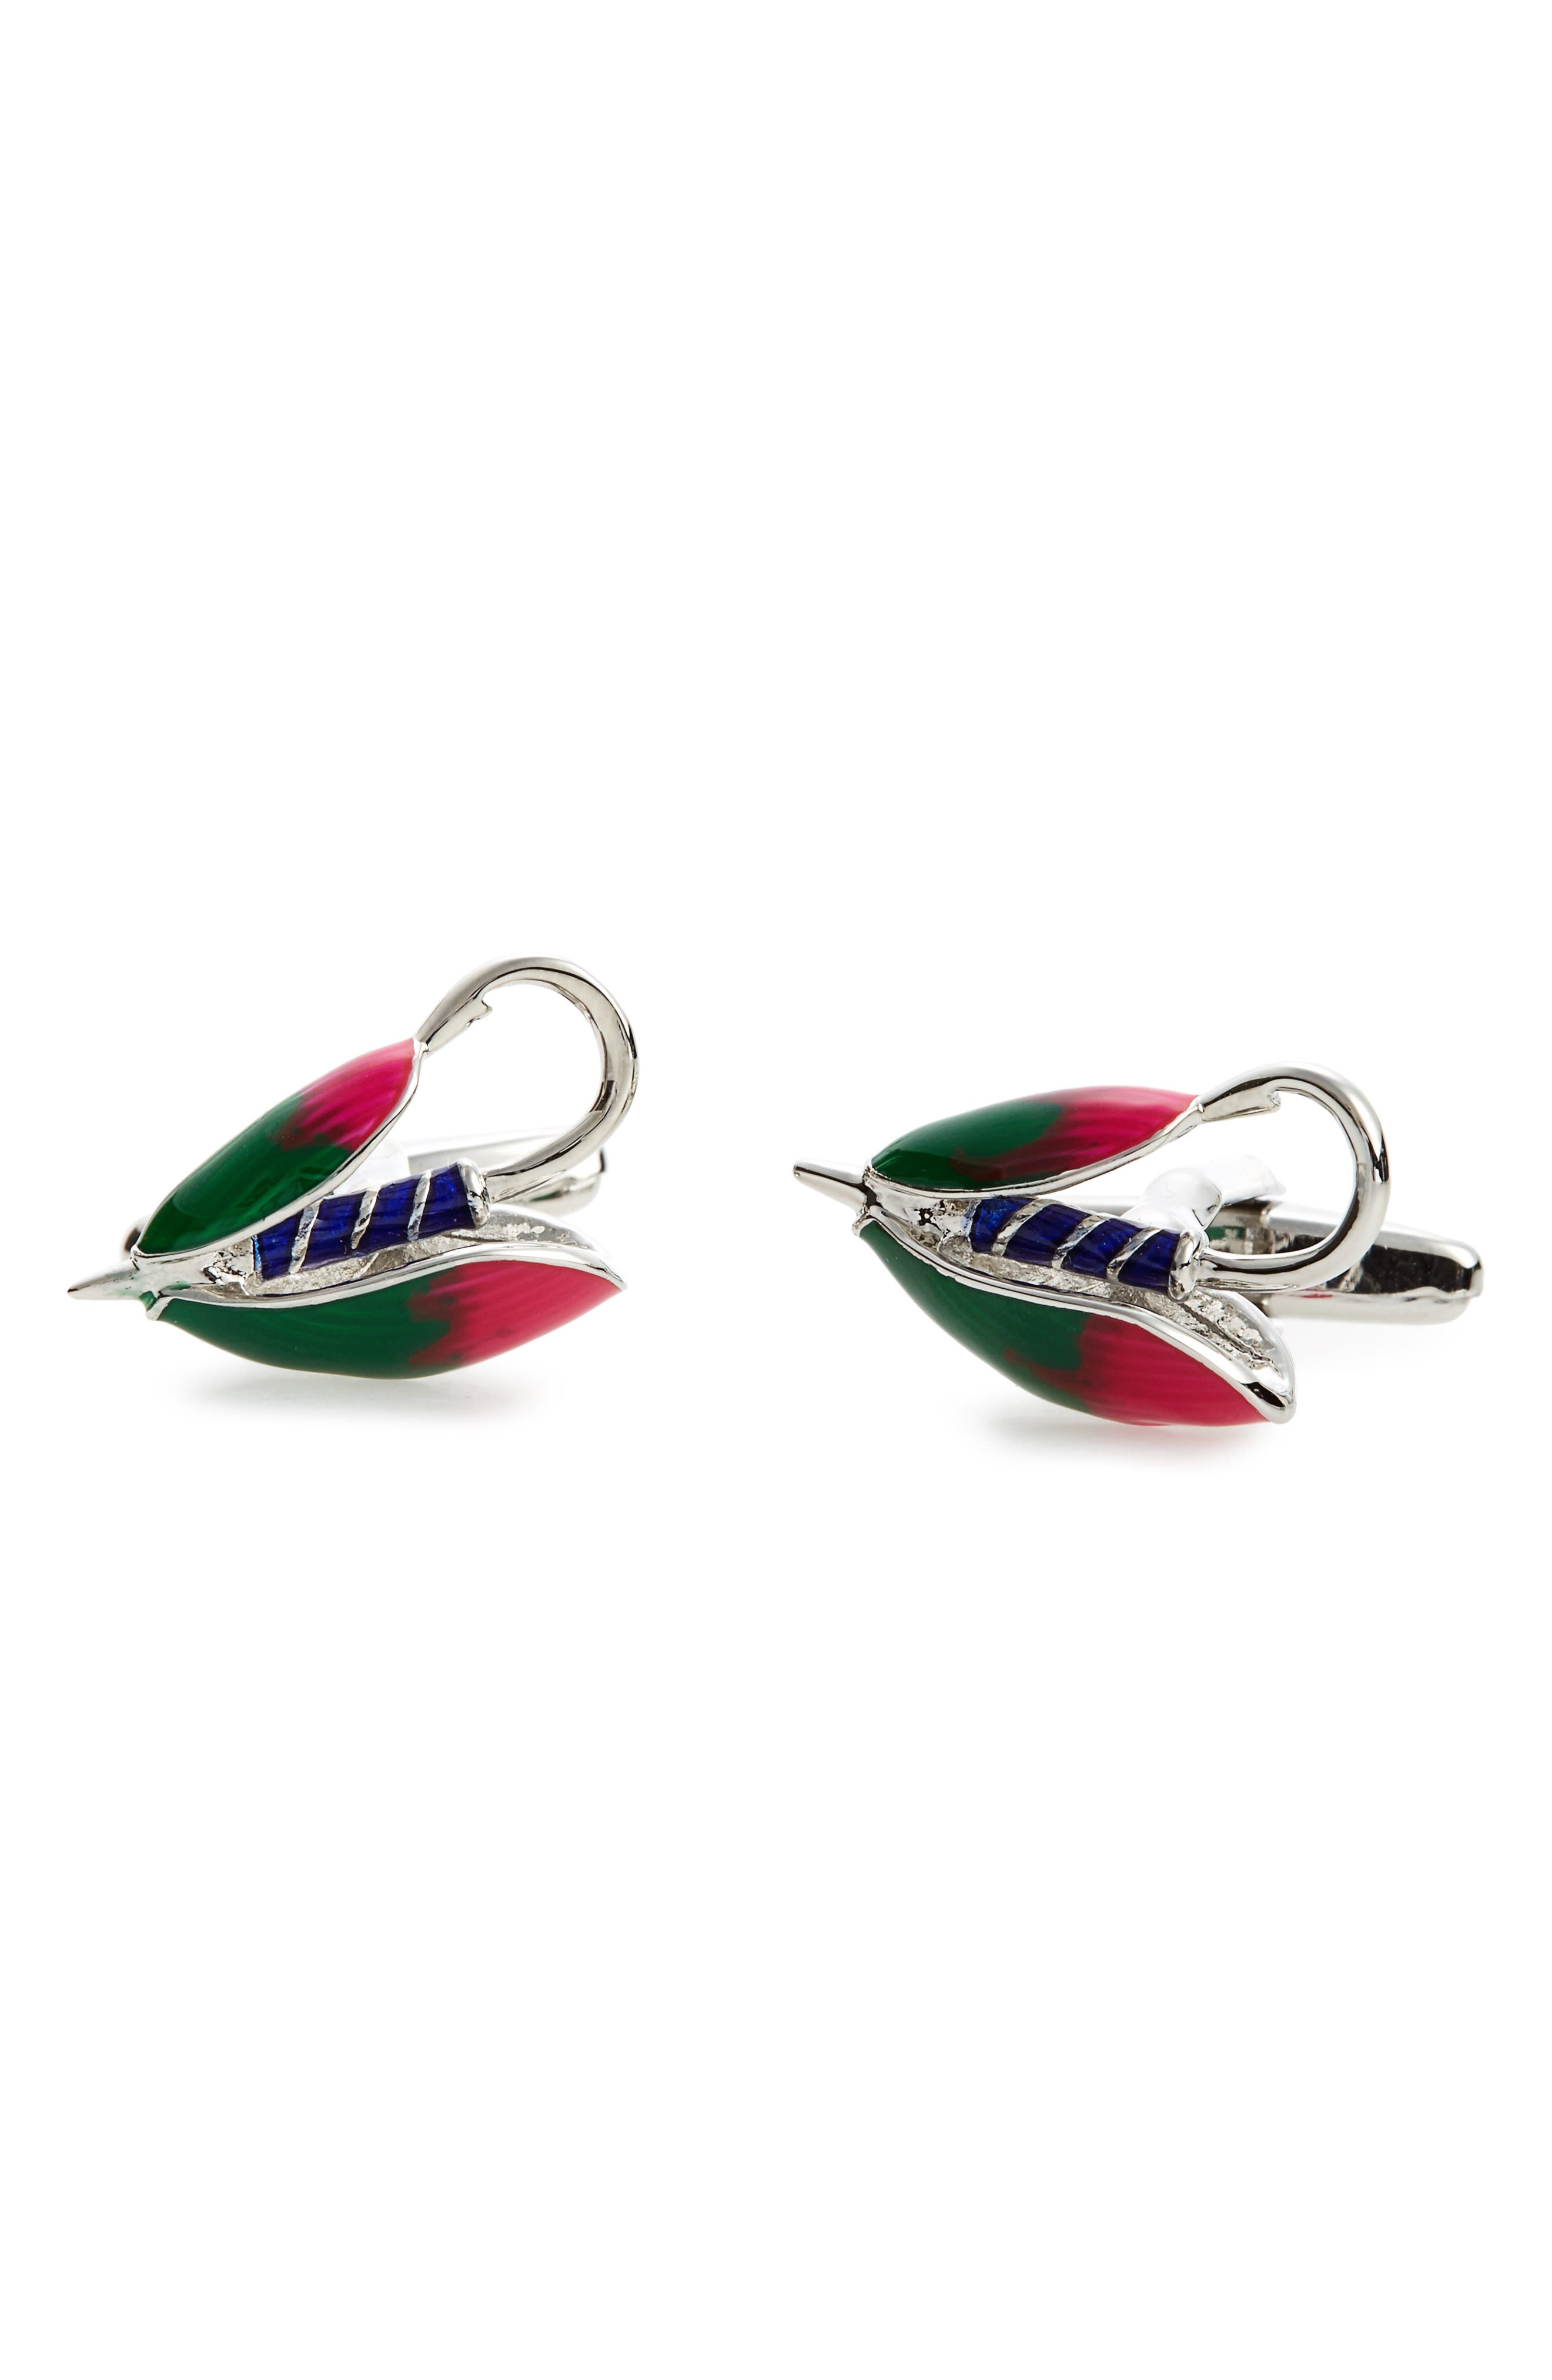 Main Image - Link Up Flyfishing Cuff Links